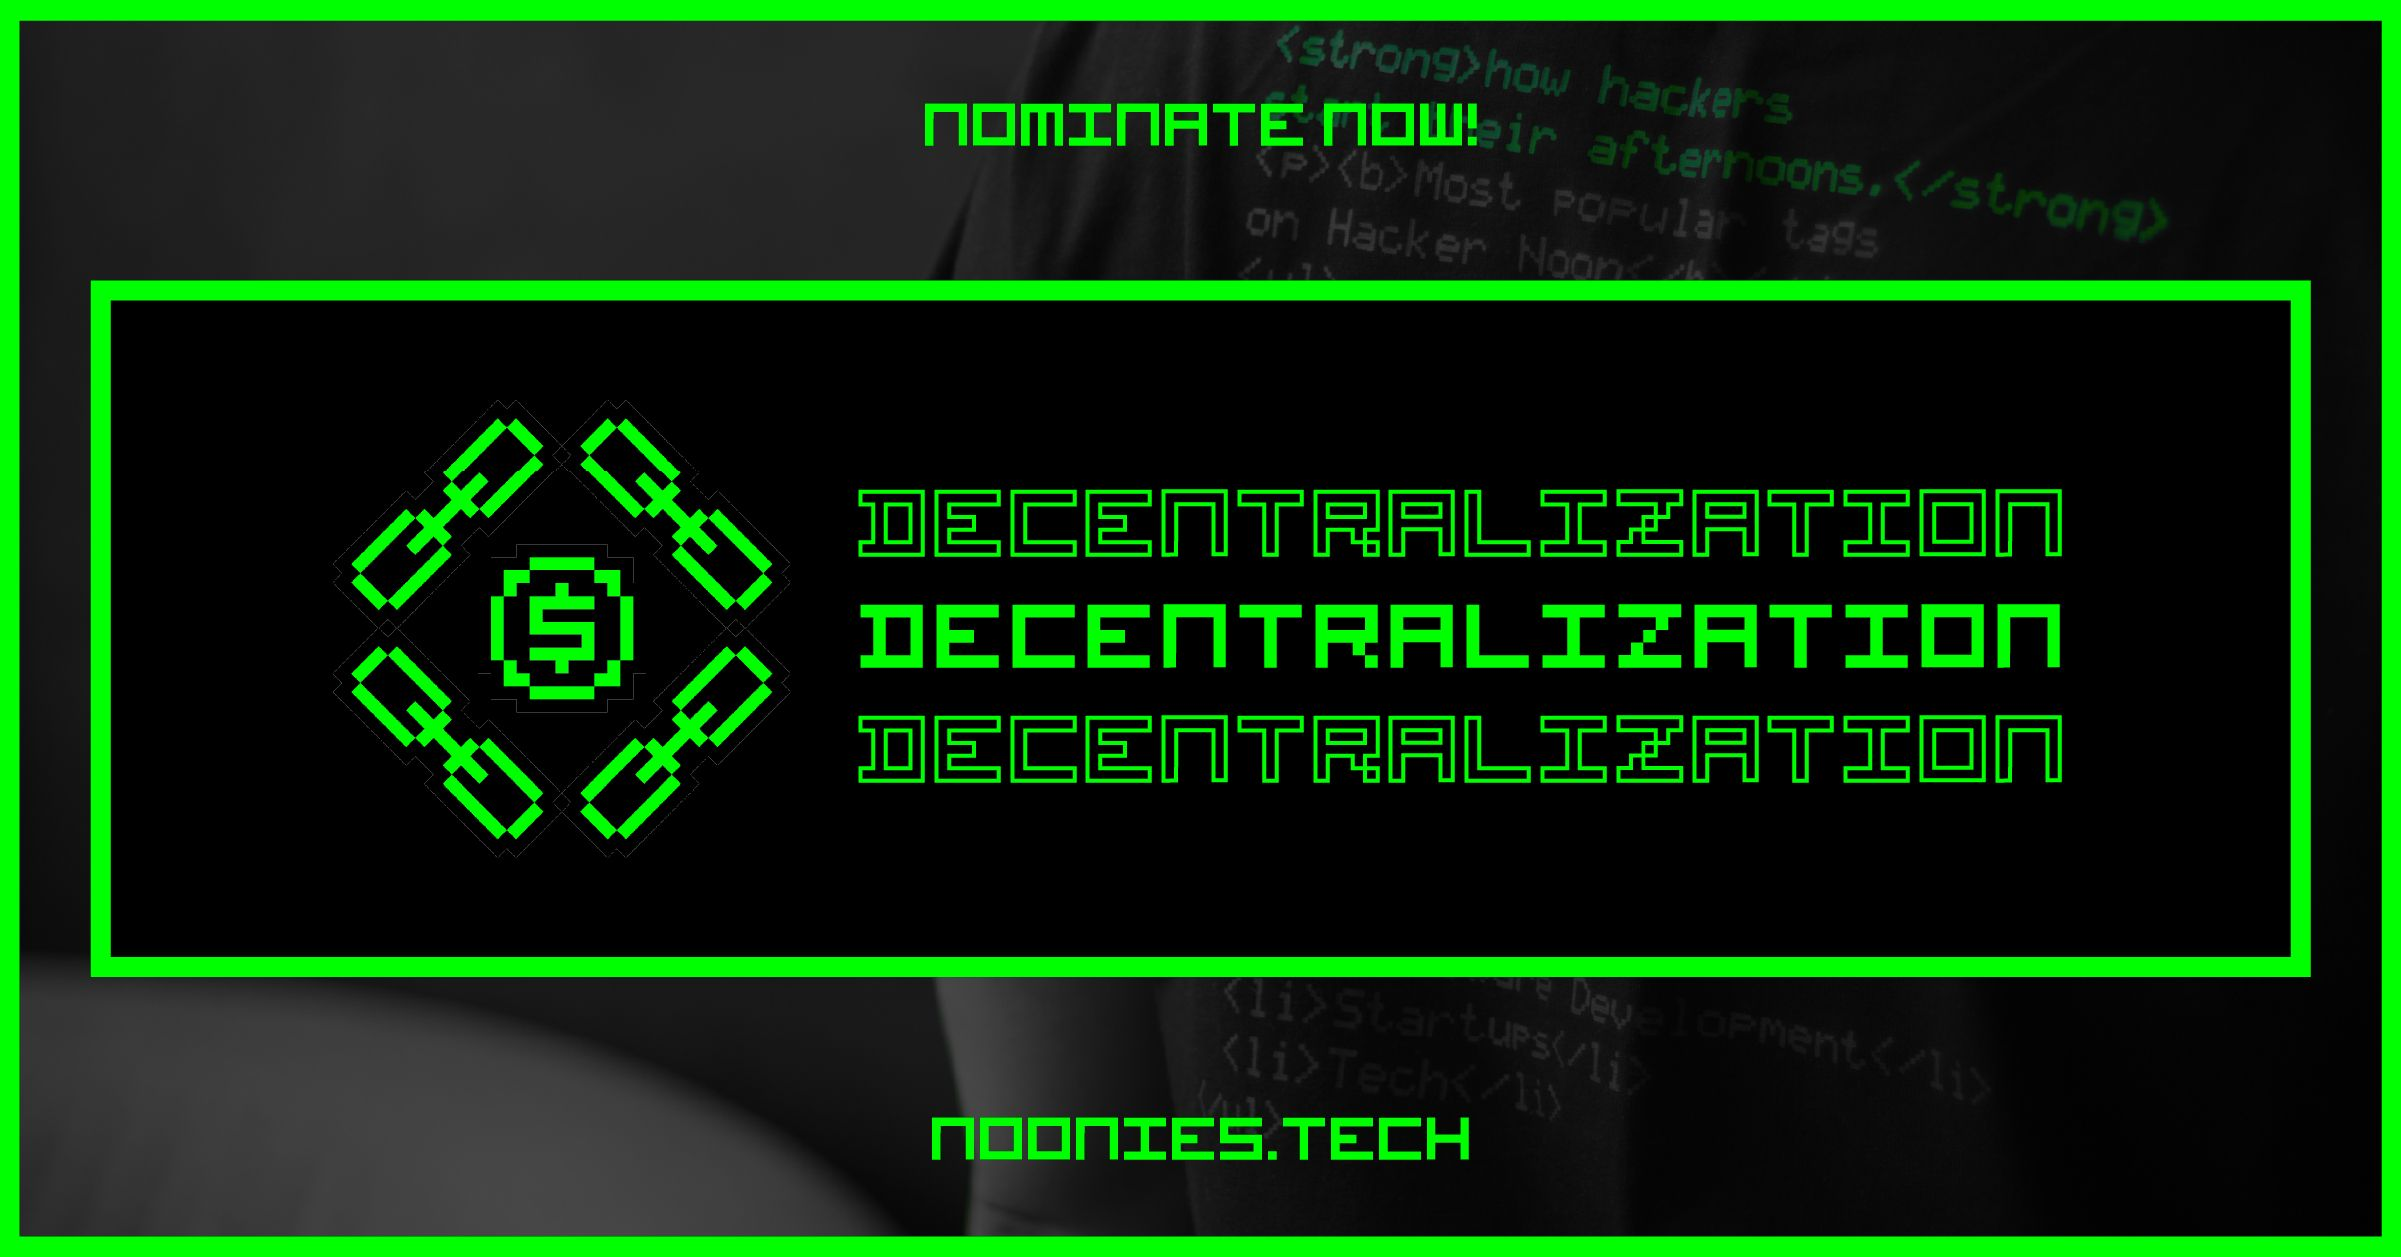 /noonie-nominee-jimmy-song-is-excited-about-the-prospect-of-bitcoin-changing-civilization-xl403tkr feature image